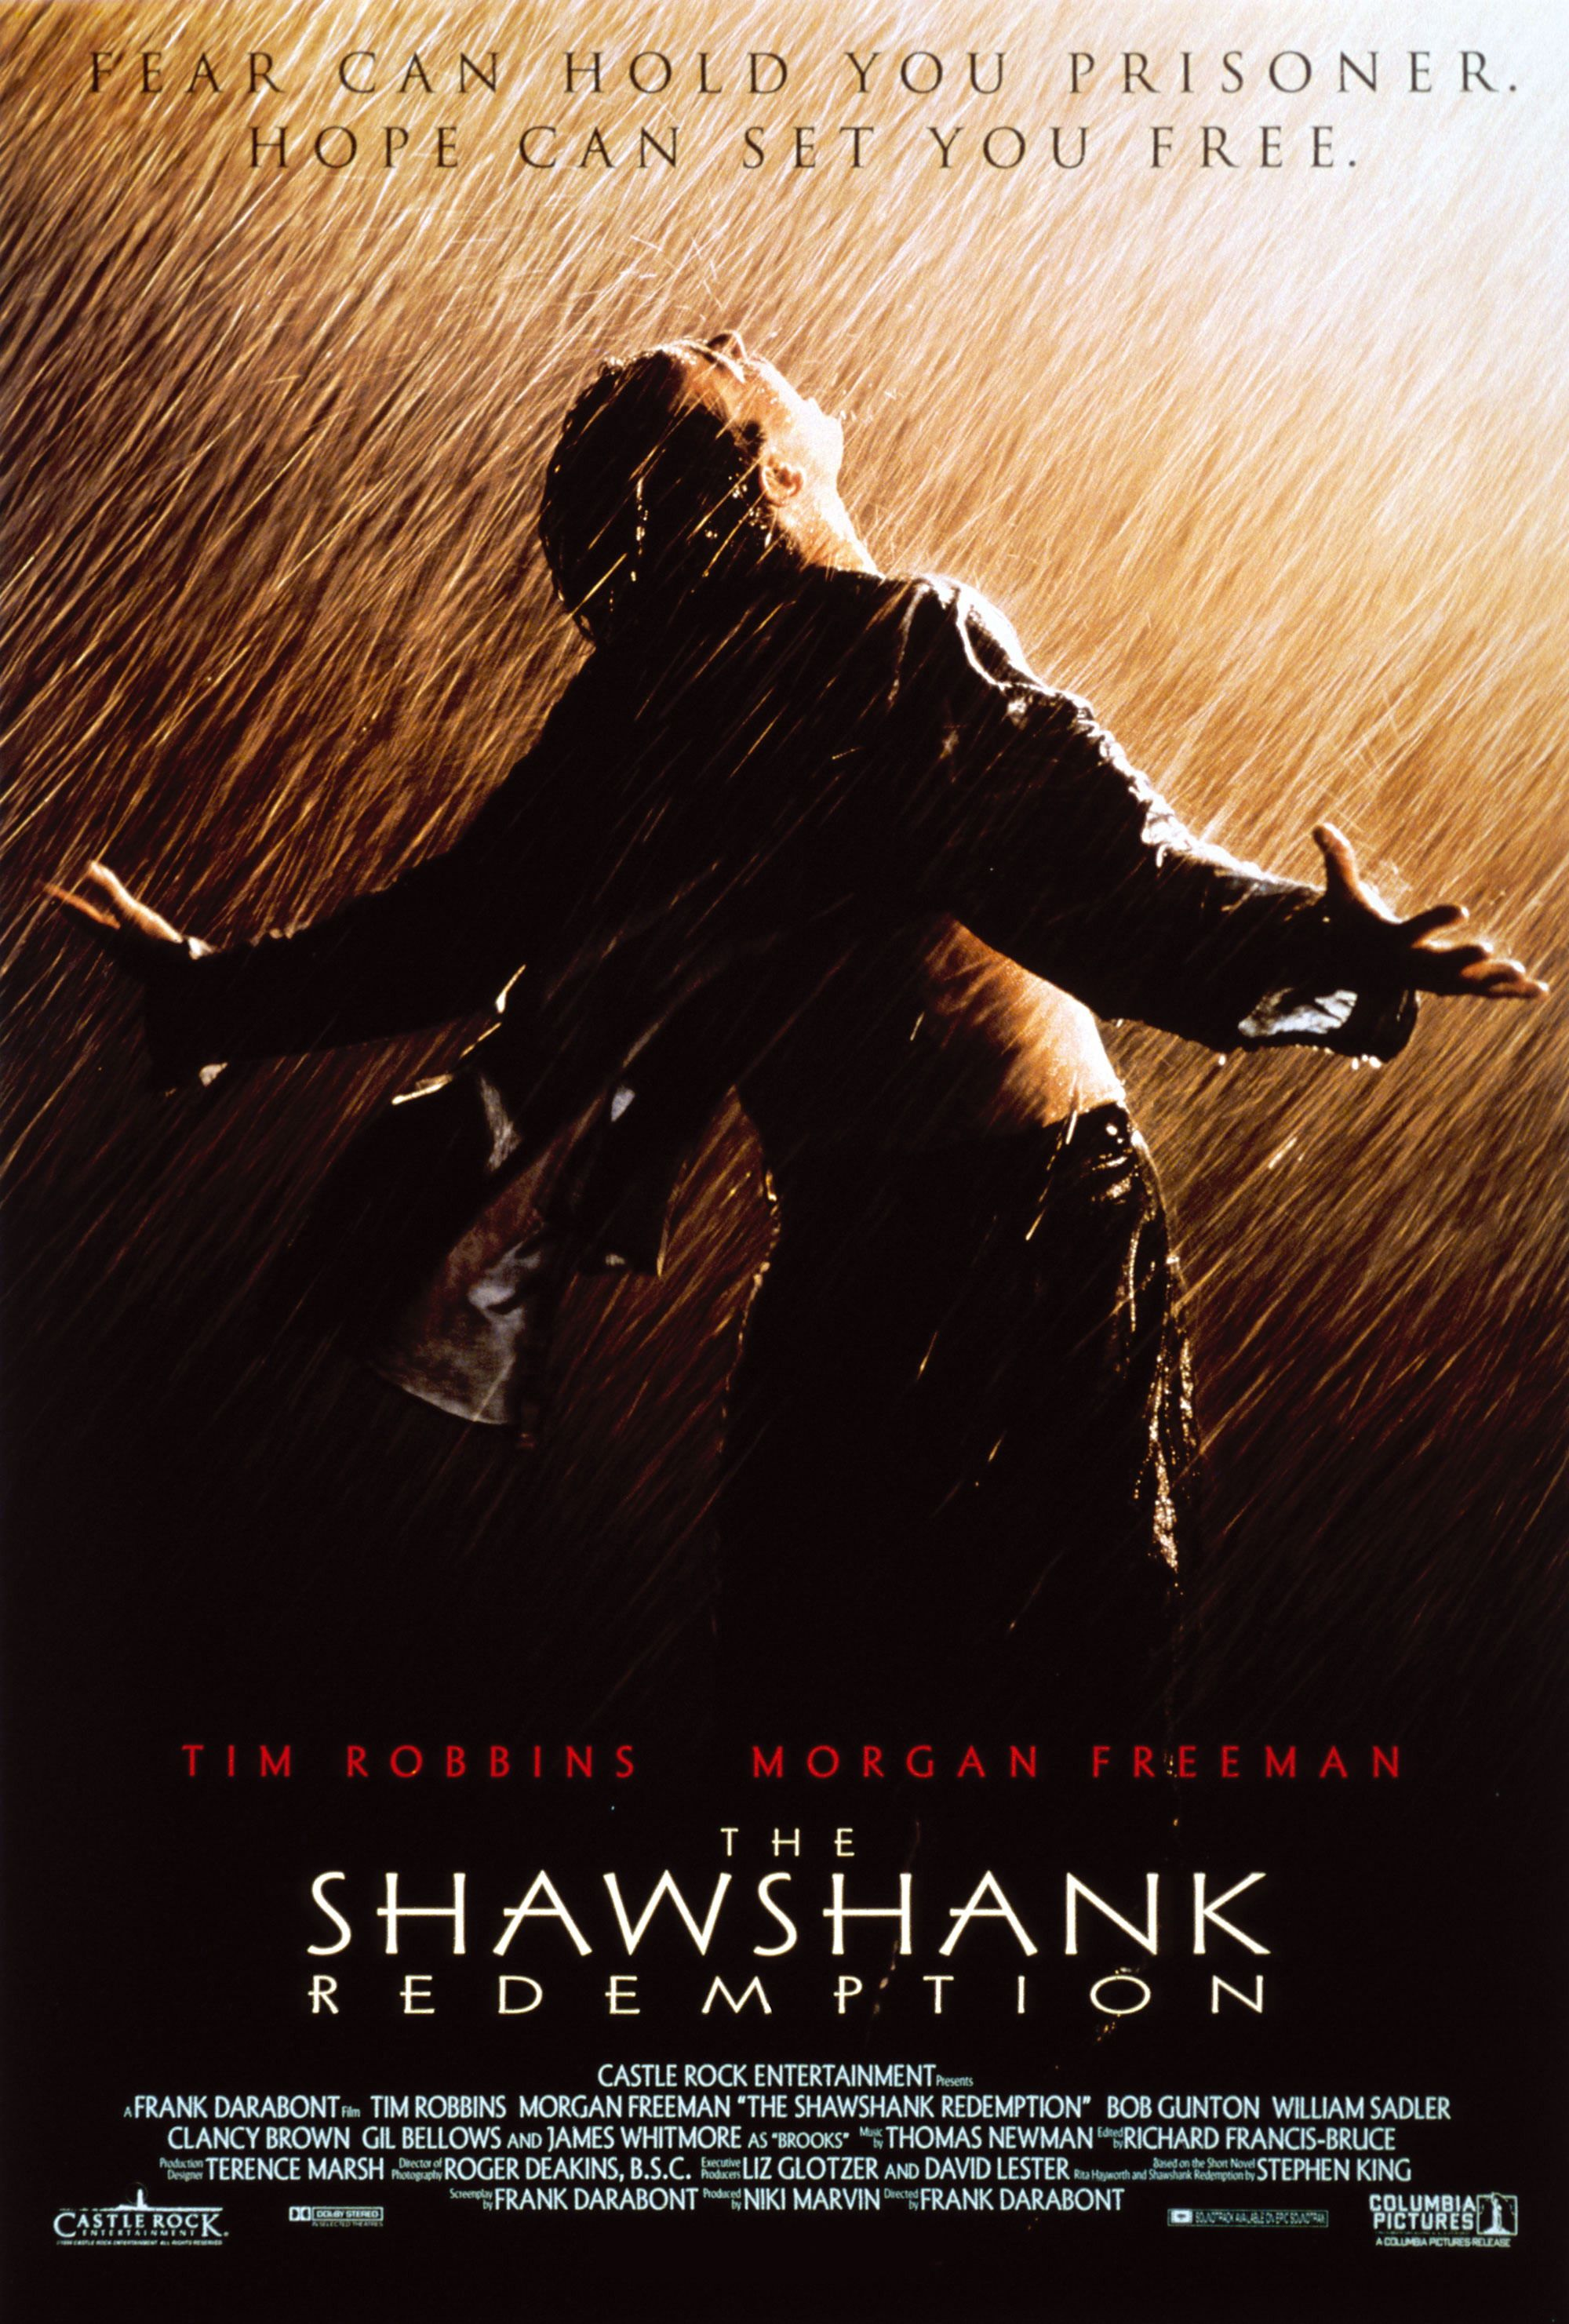 The Shawshank Redemption Hope I A Good Thing And Maybe Best Of All Essay